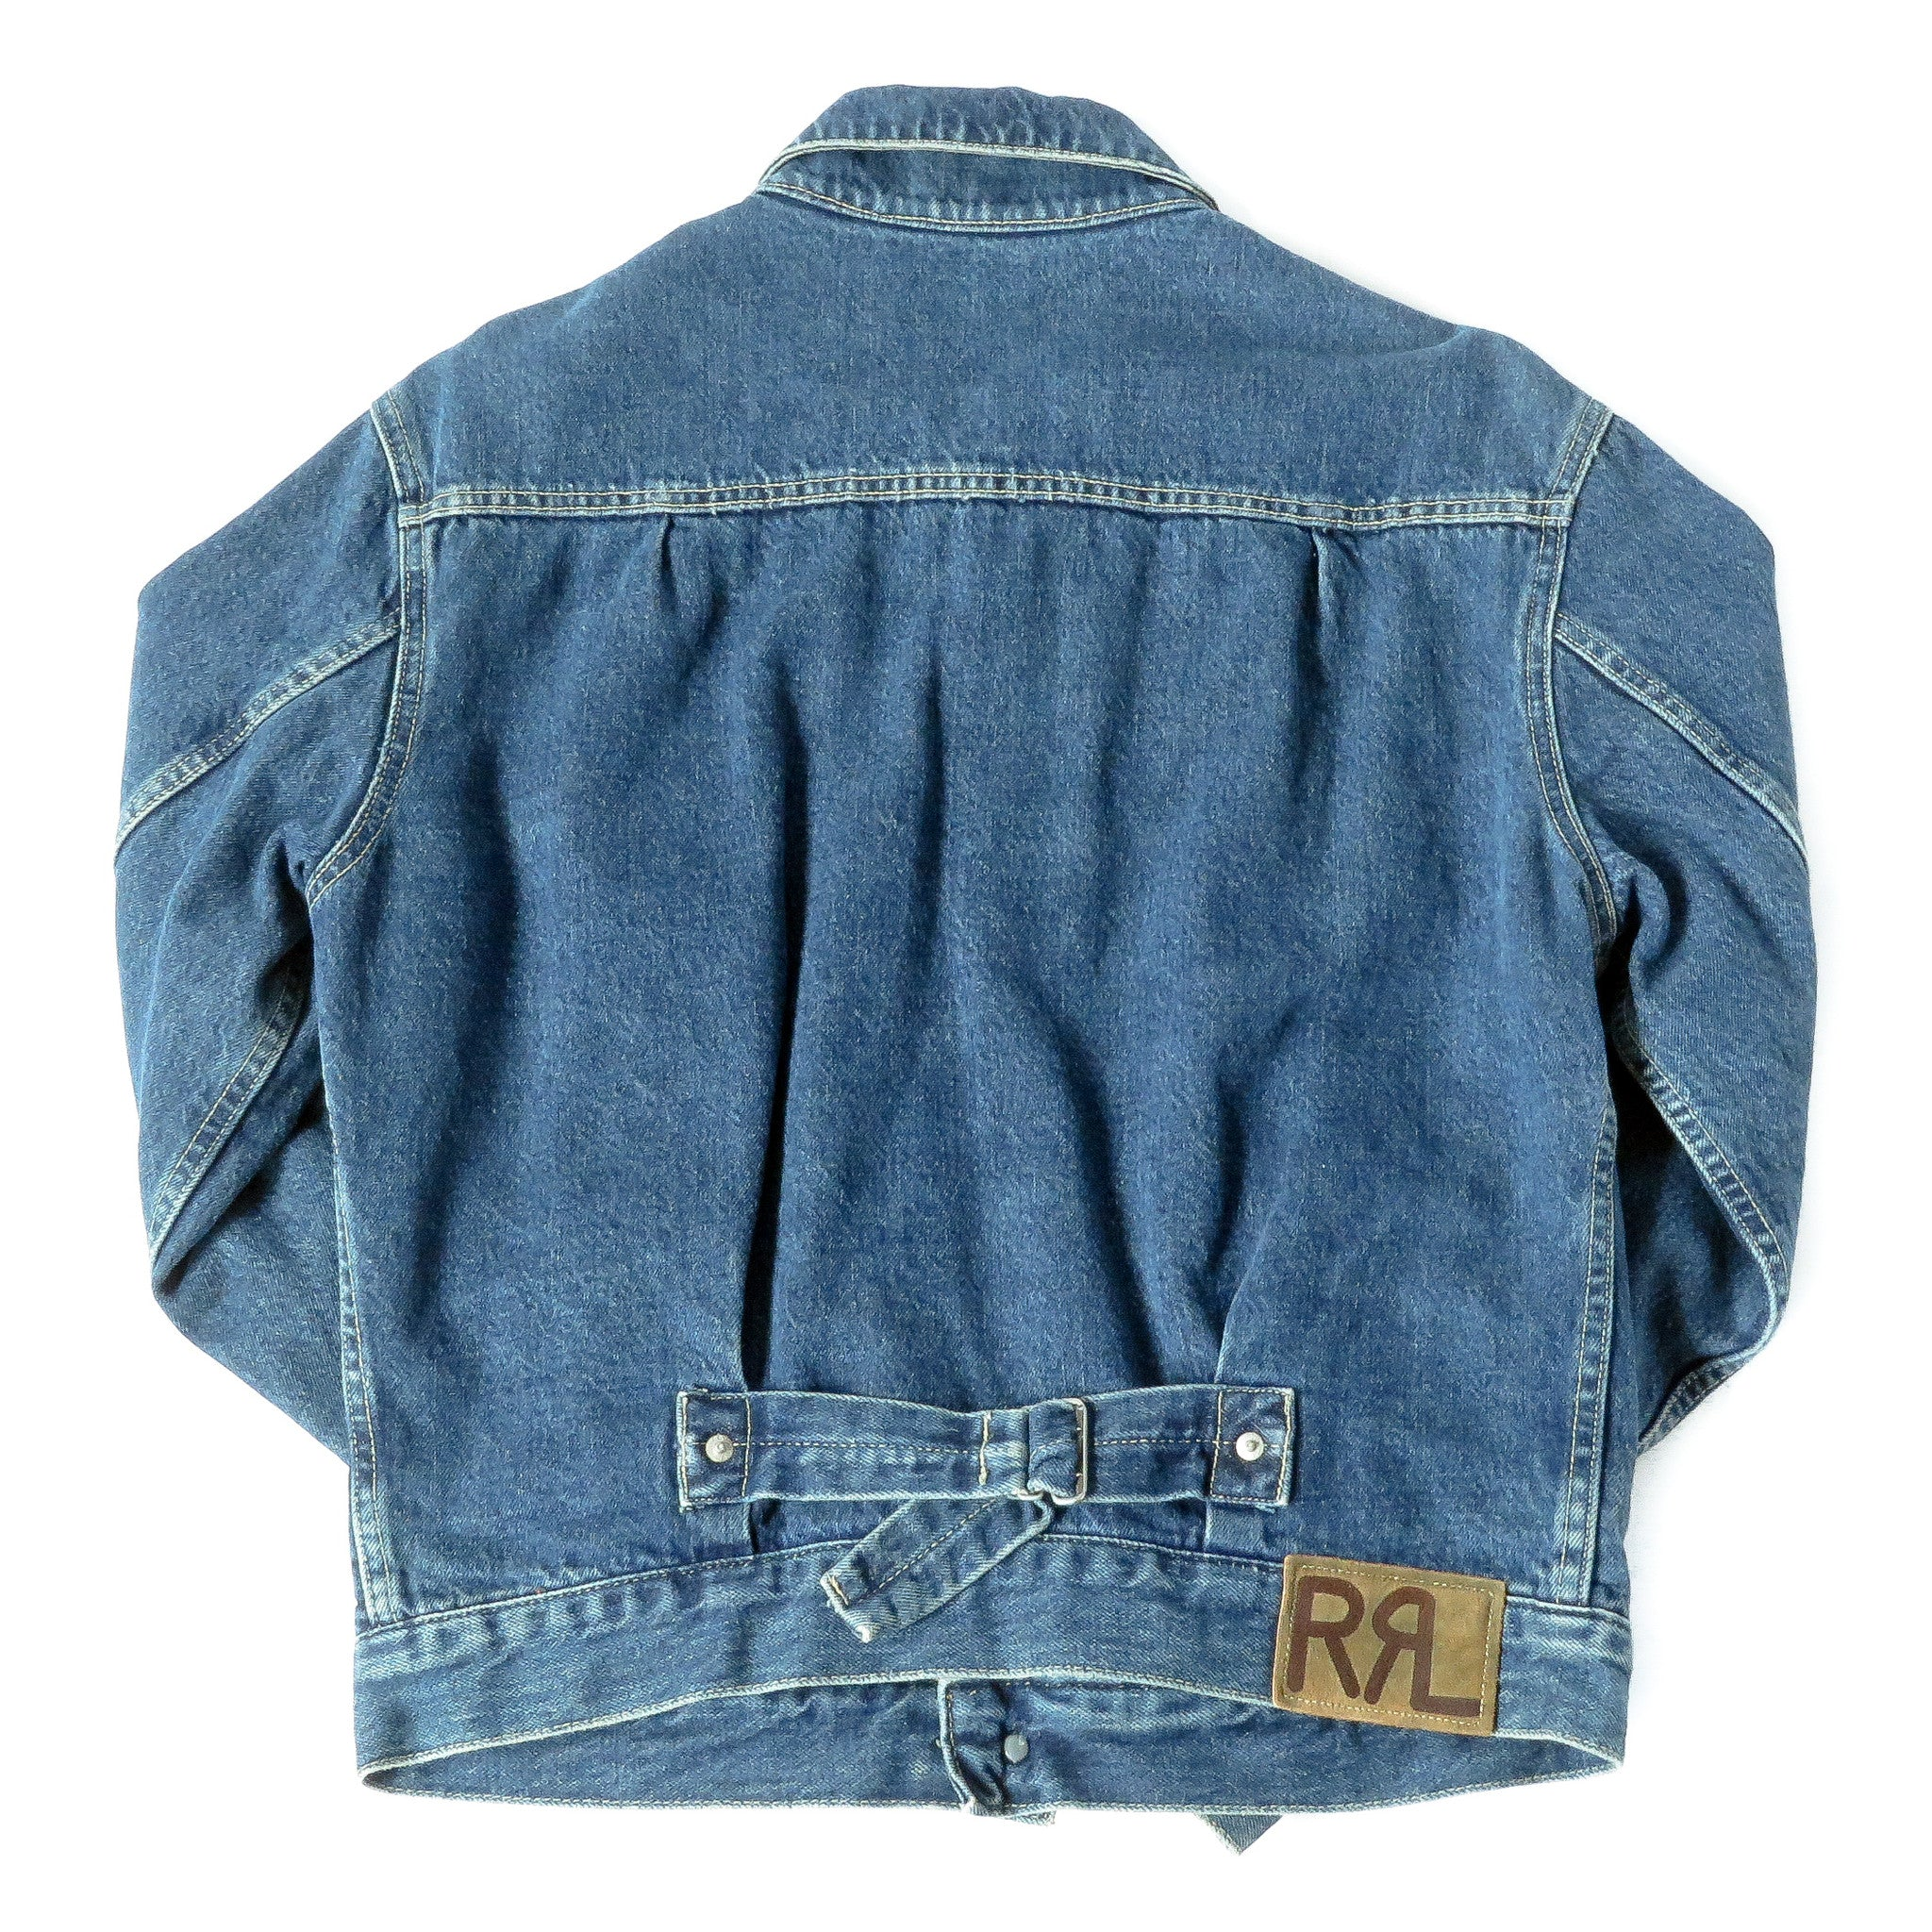 Vintage Double RL Ralph Lauren Denim Jacket Sz S